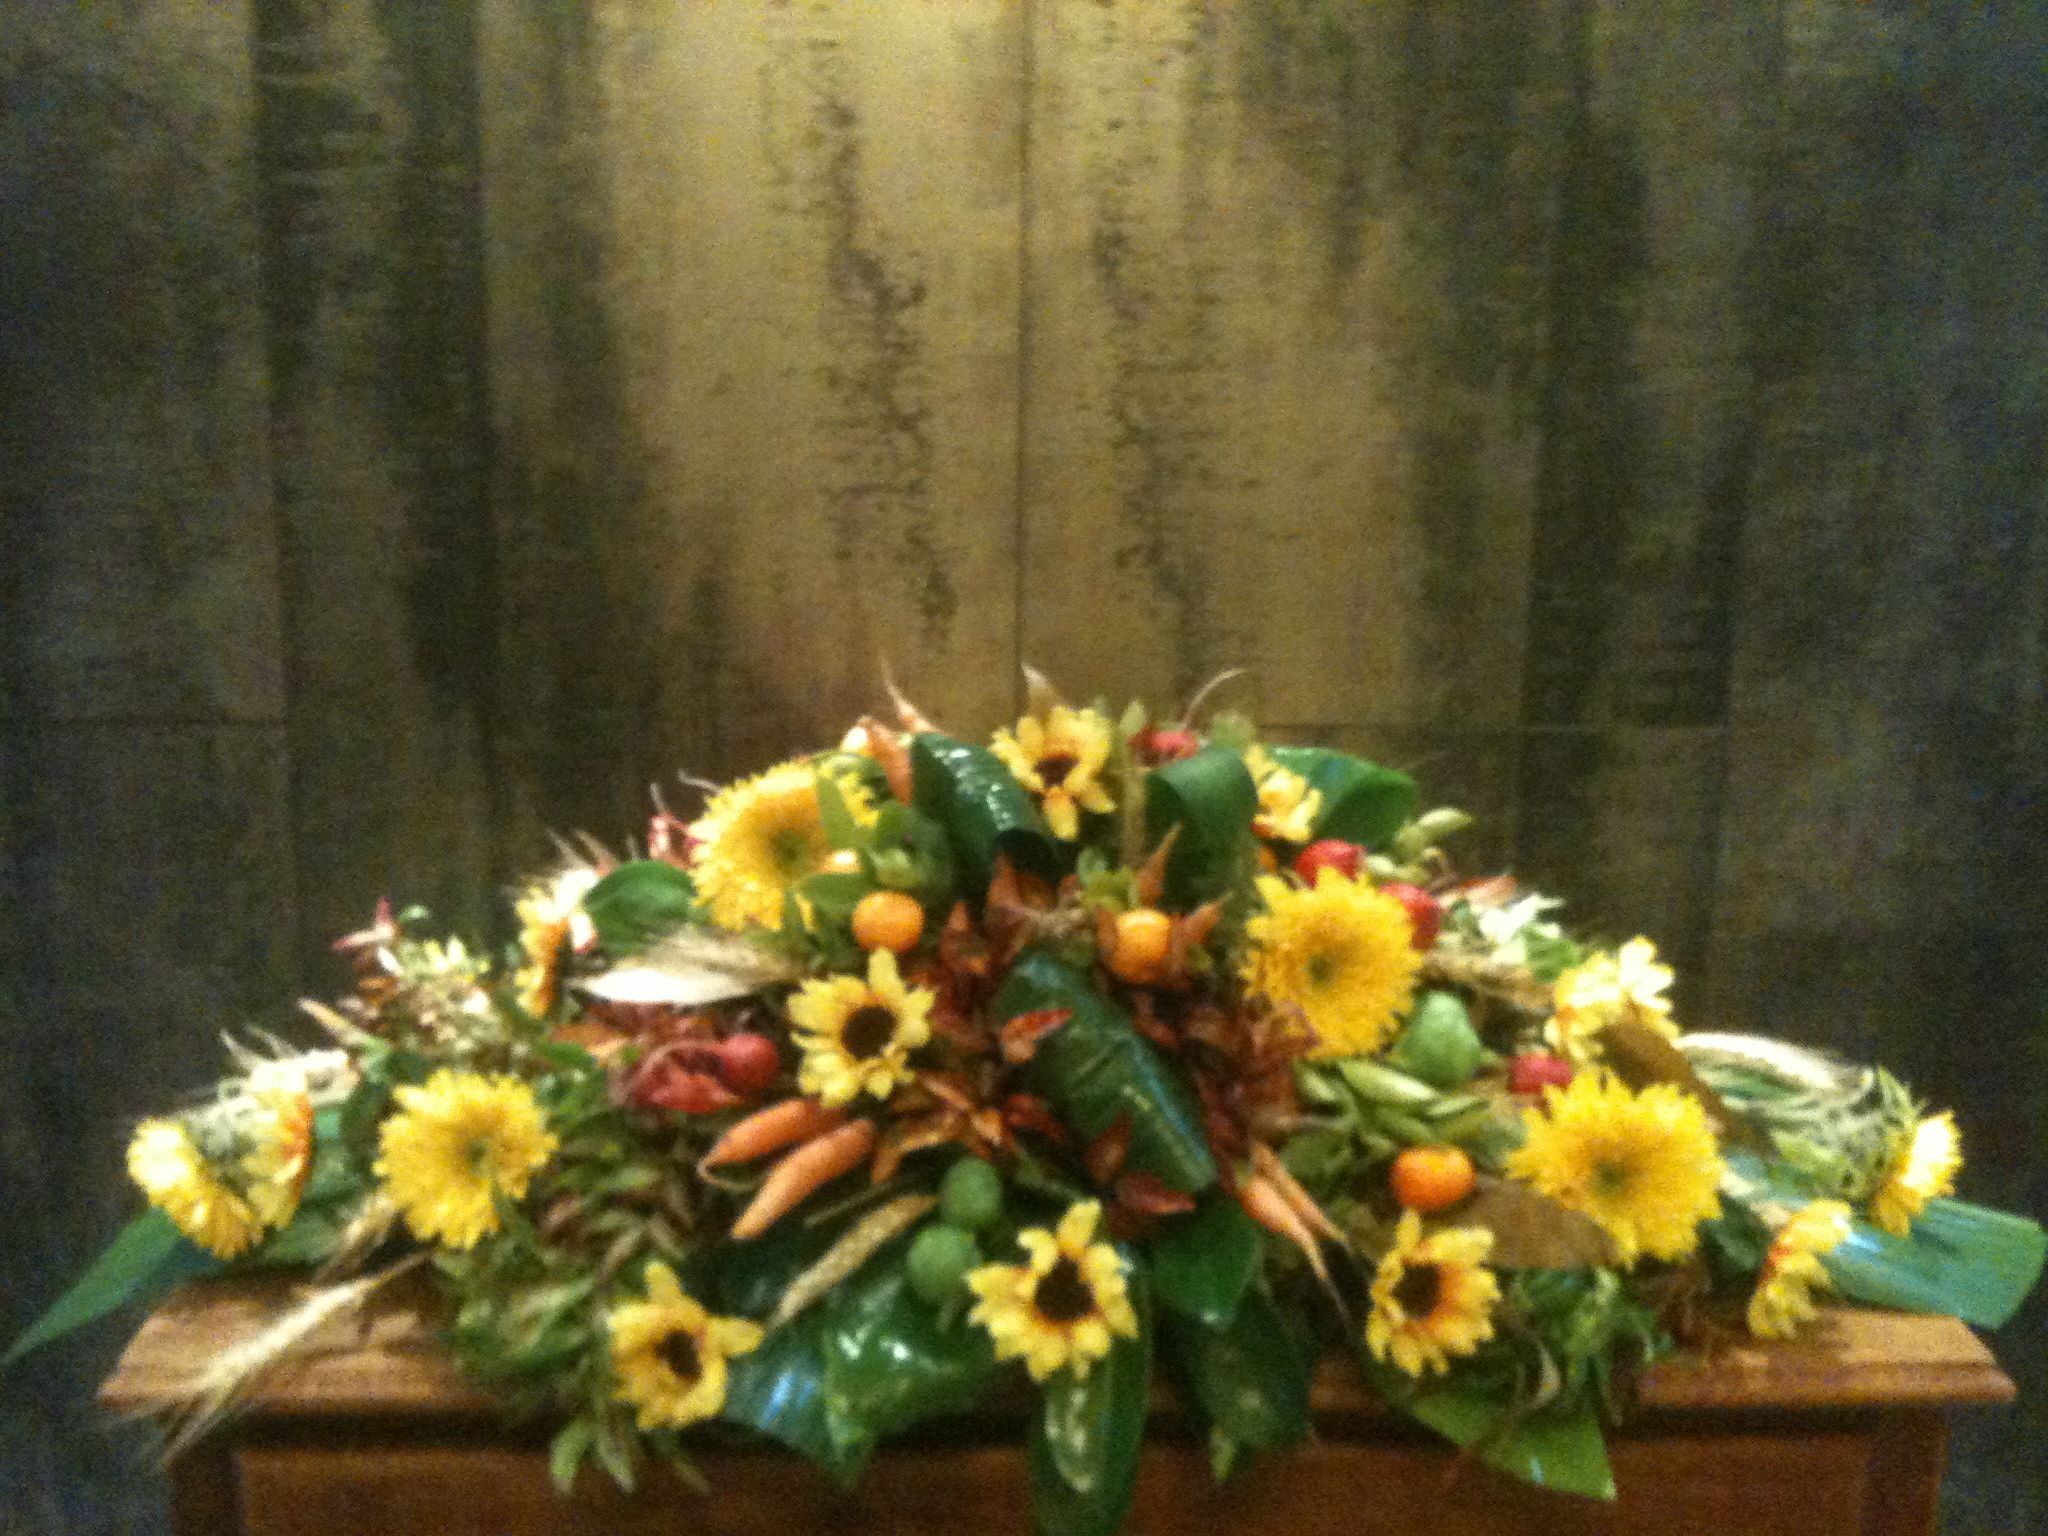 Funeral Spray Of Sunflowers And Vegetables By Karen Sweet Wattle